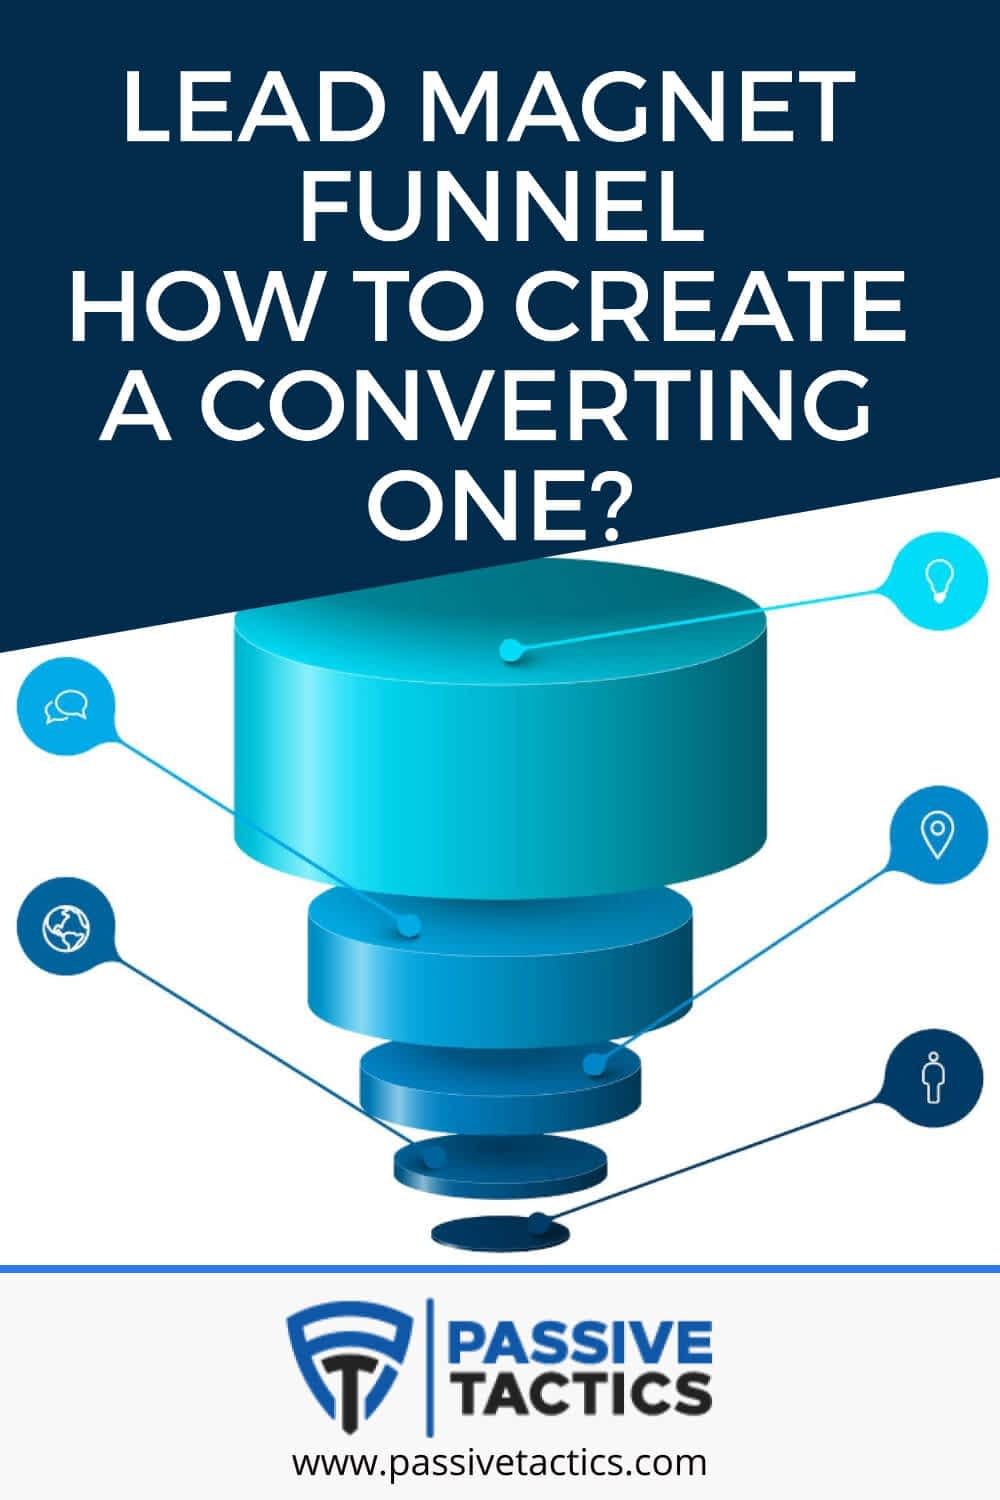 Lead Magnet Funnel: How To Create A Converting One?